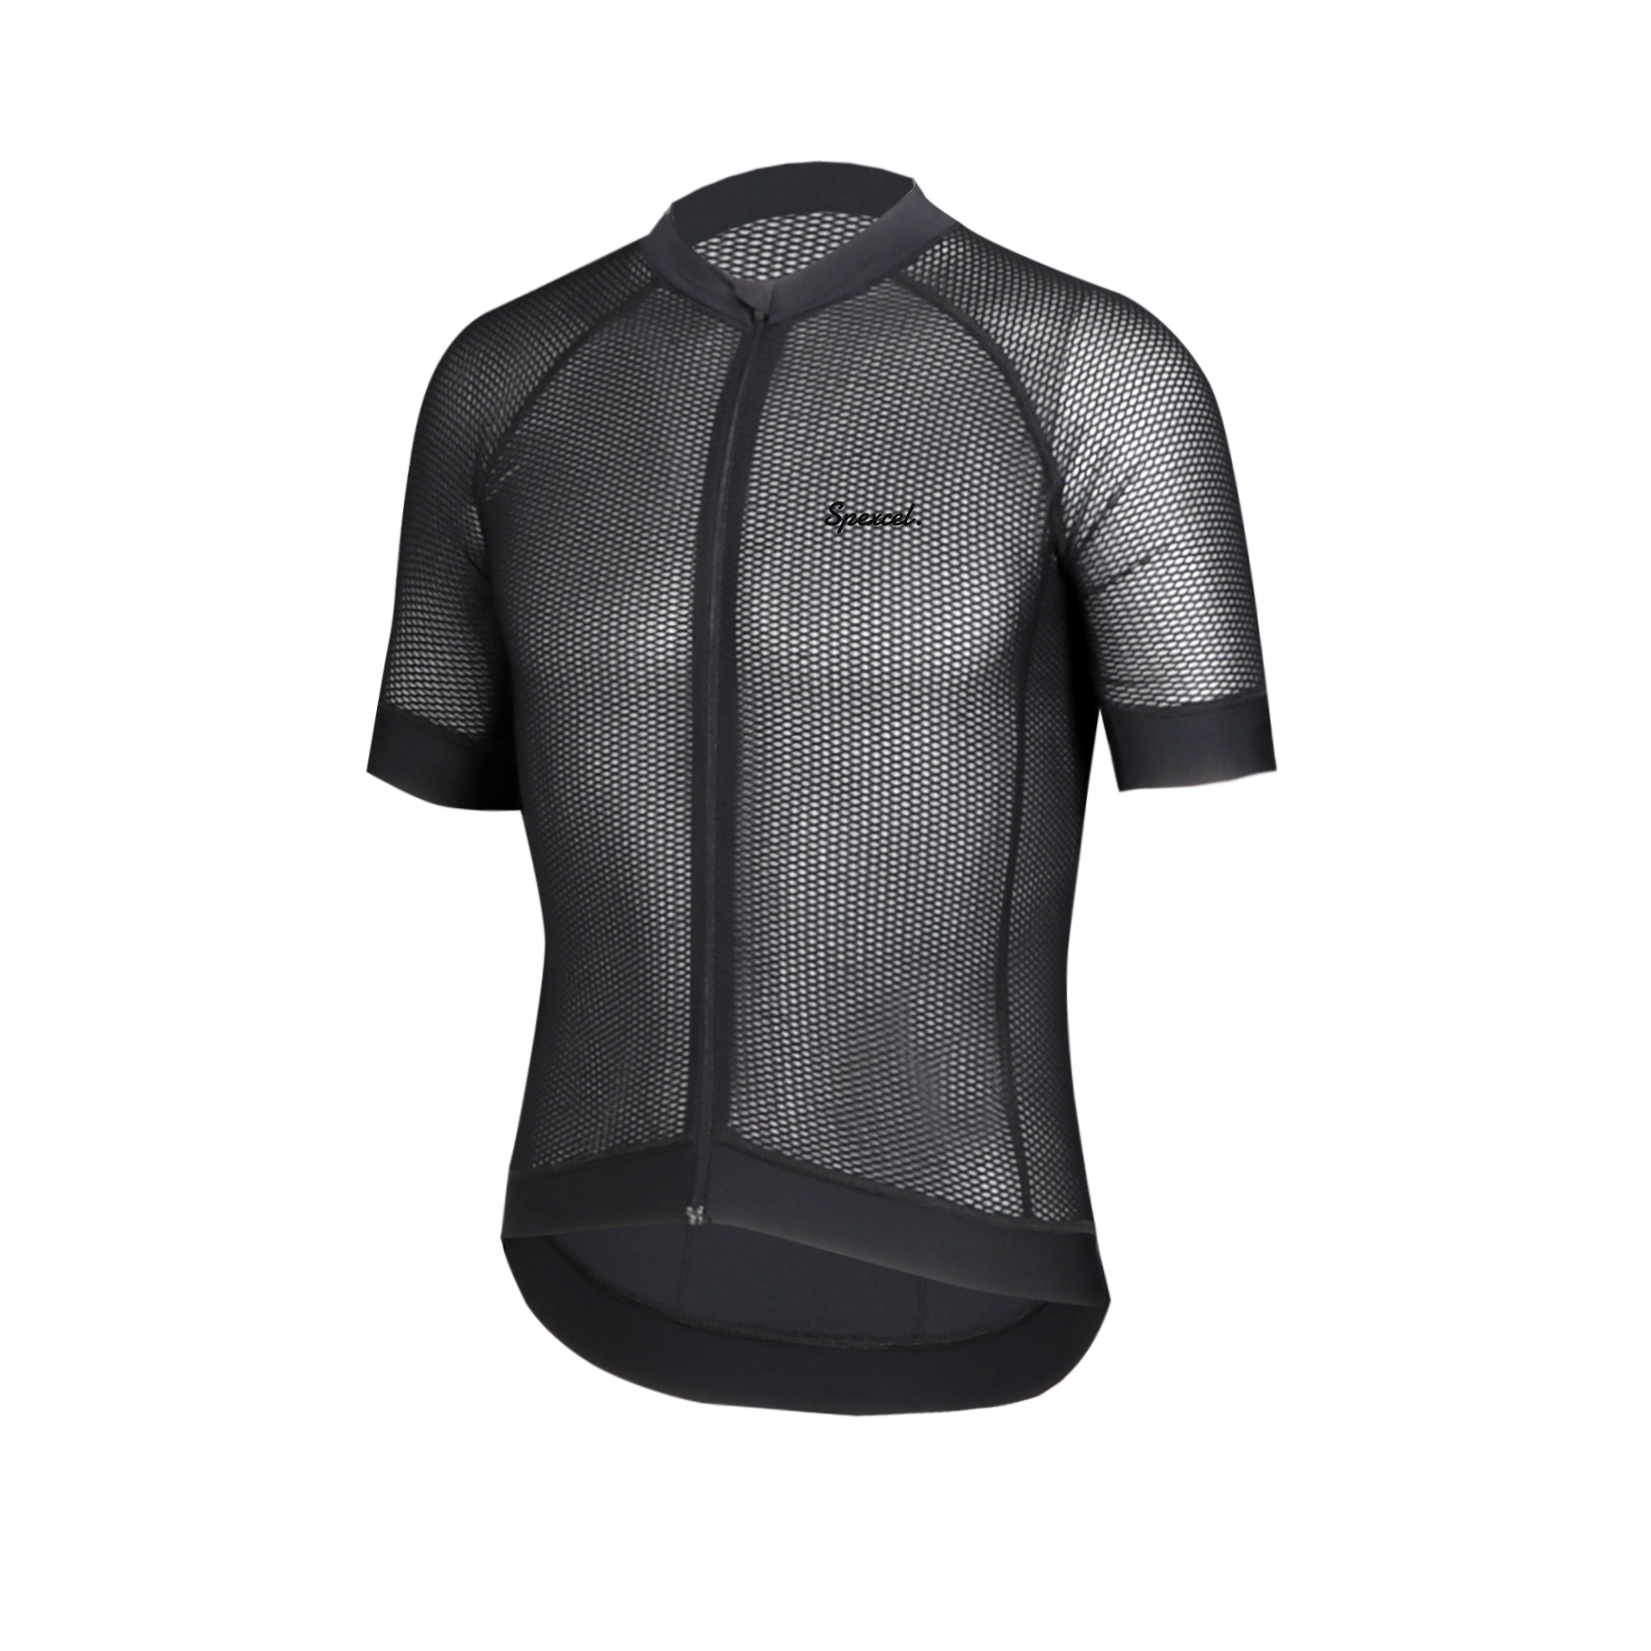 SPEXCEL 2019 NEW SHORT SLEEVE CYCLING JERSEY ALL OPEN CELL MESH FABRIC Flatlock sewing with Iltay miti power band accept custom|Cycling Jerseys| |  - title=